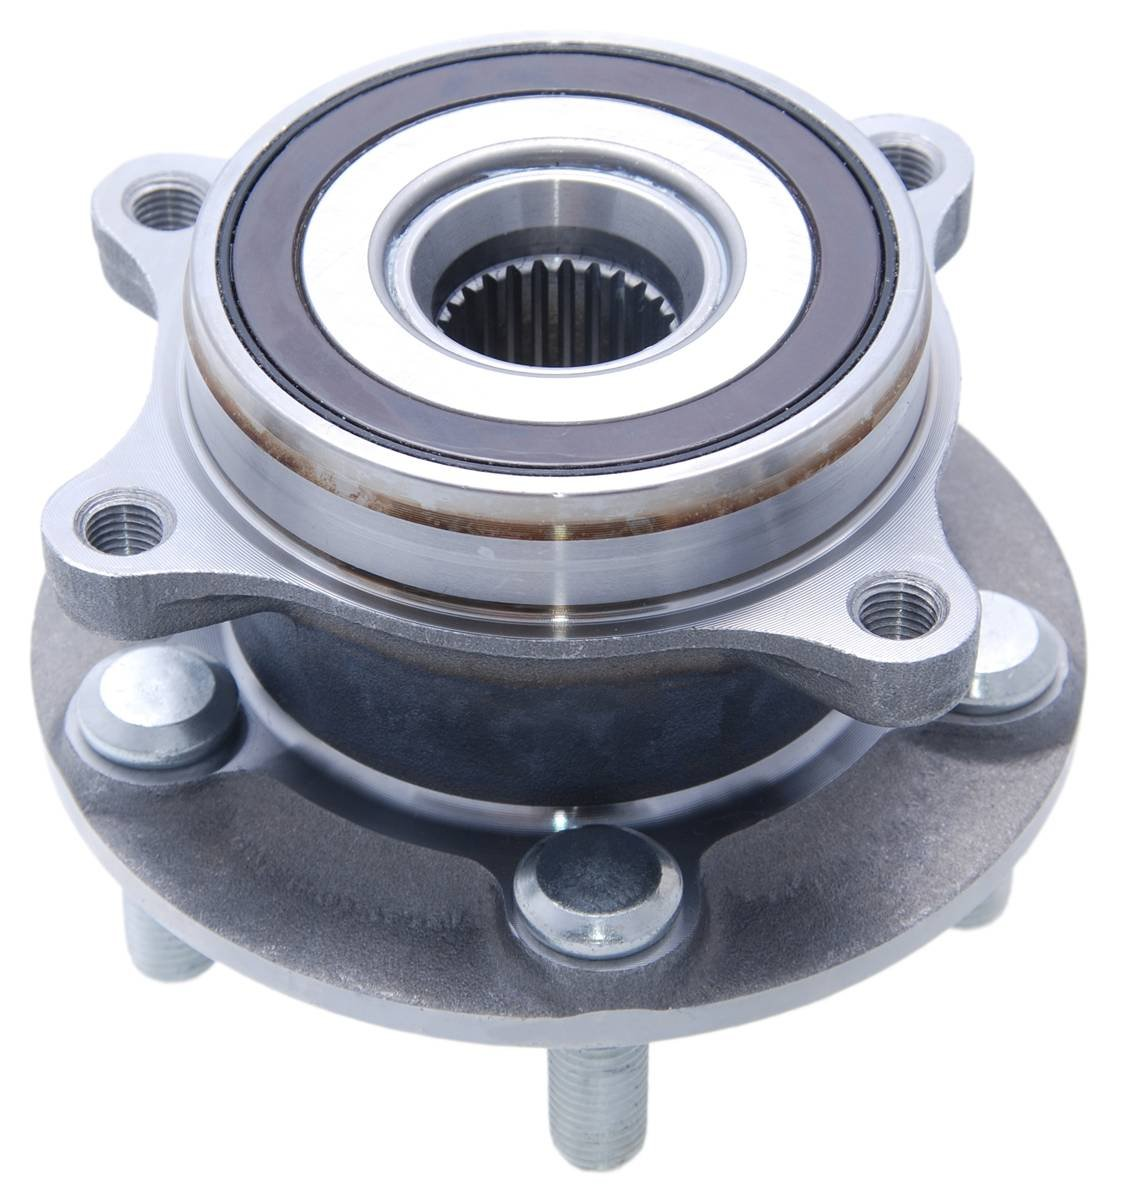 OE:4355047010 High quality professional rear free wheel hub for toyota prius